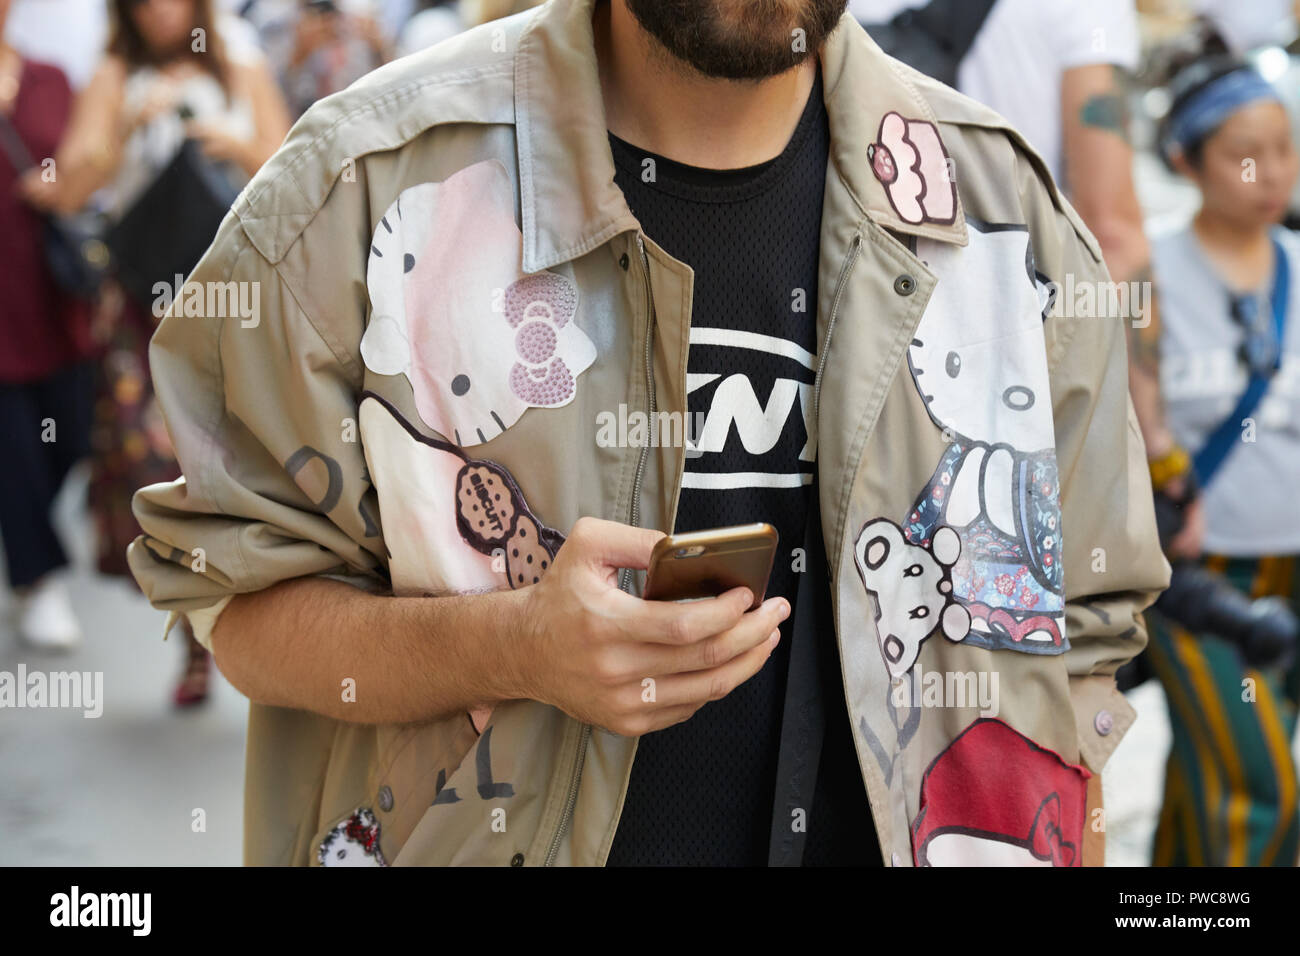 8a19d03db MILAN, ITALY - SEPTEMBER 20, 2018: Man with beige jacket with Hello Kitty  design before Vivetta fashion show, Milan Fashion Week street style